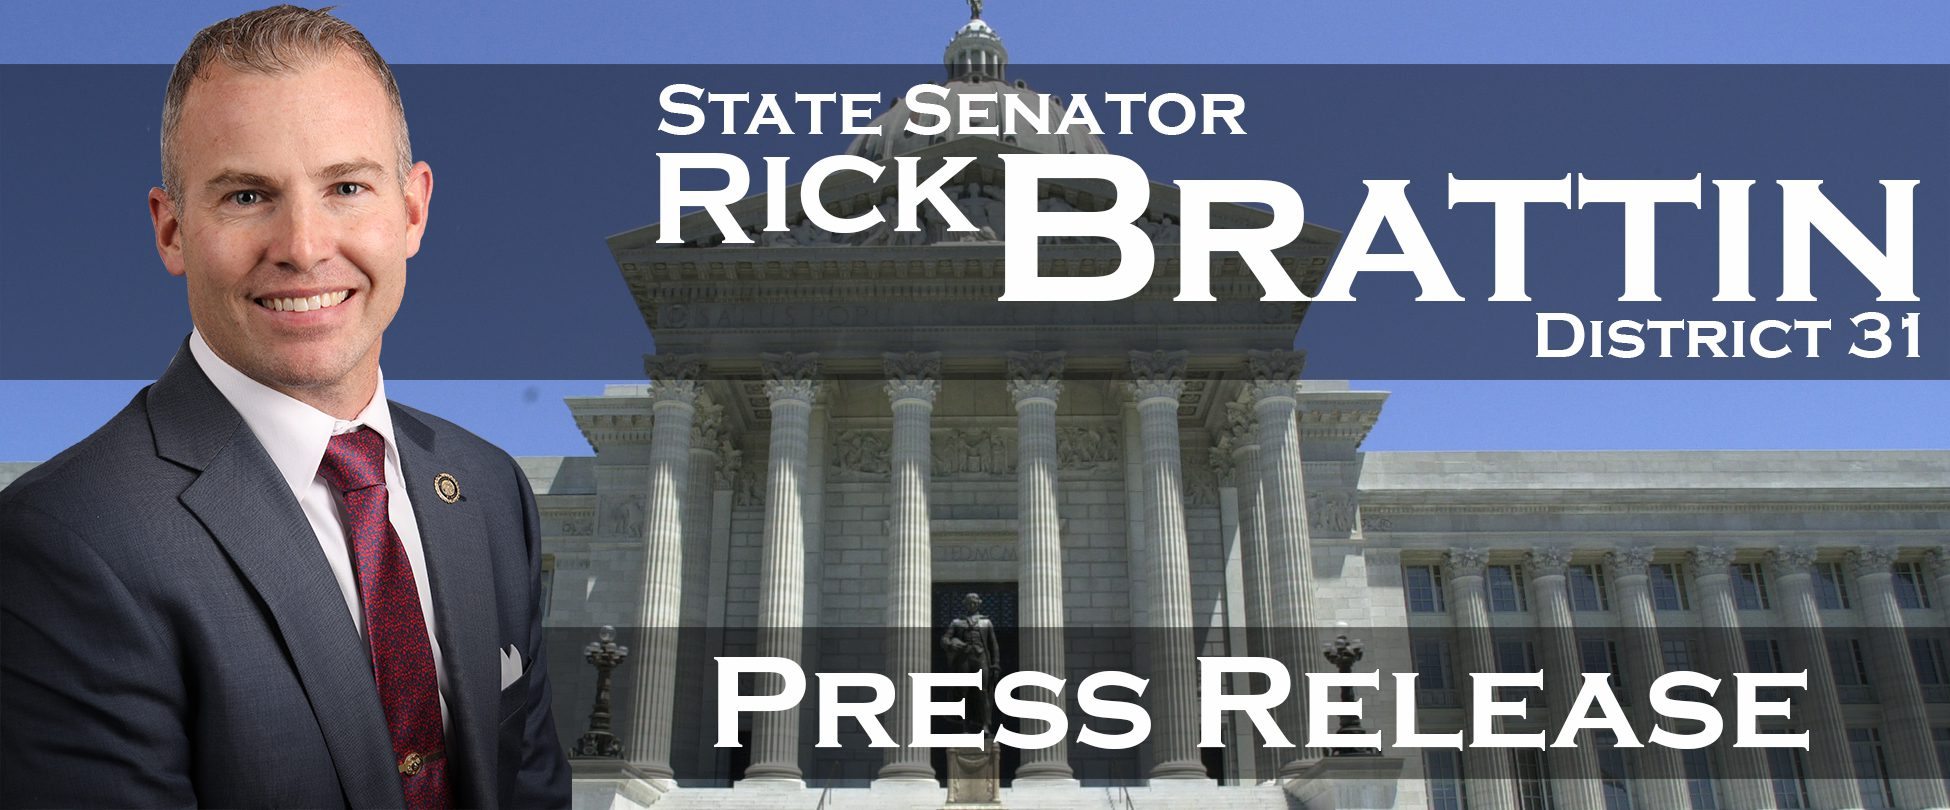 Sen. Rick Brattin Urges Governor to Call Lawmakers Back to State Capitol to Stop President's Vaccine Mandates